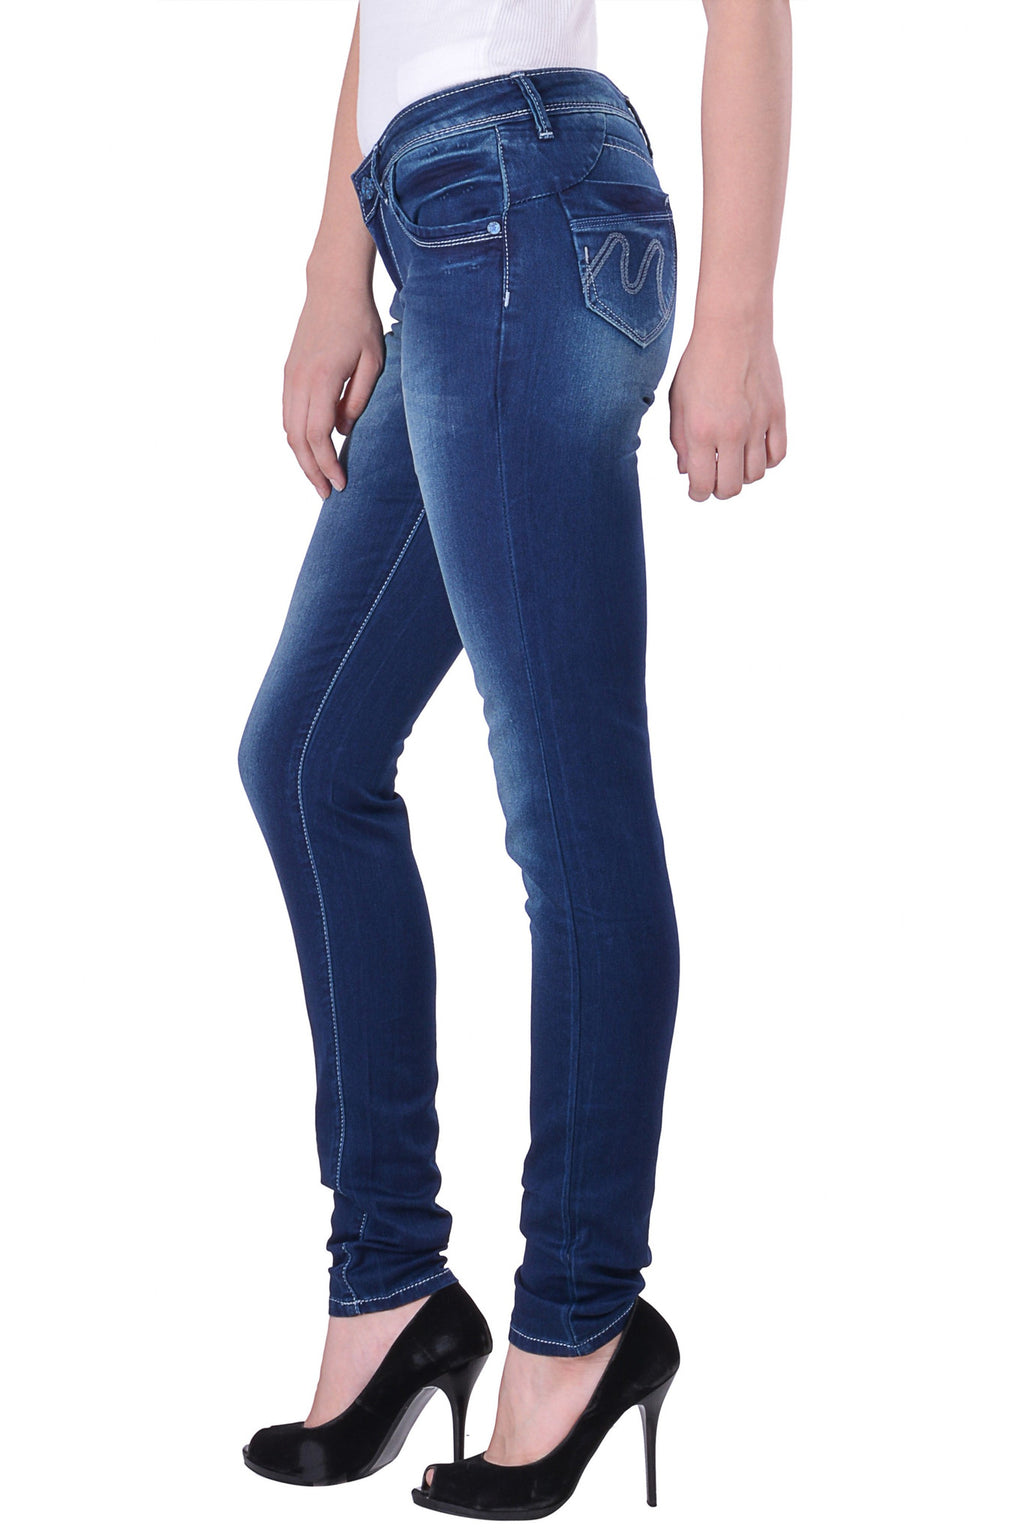 Hoffmen Slim Fit Women's Blue Jeans MSB1218